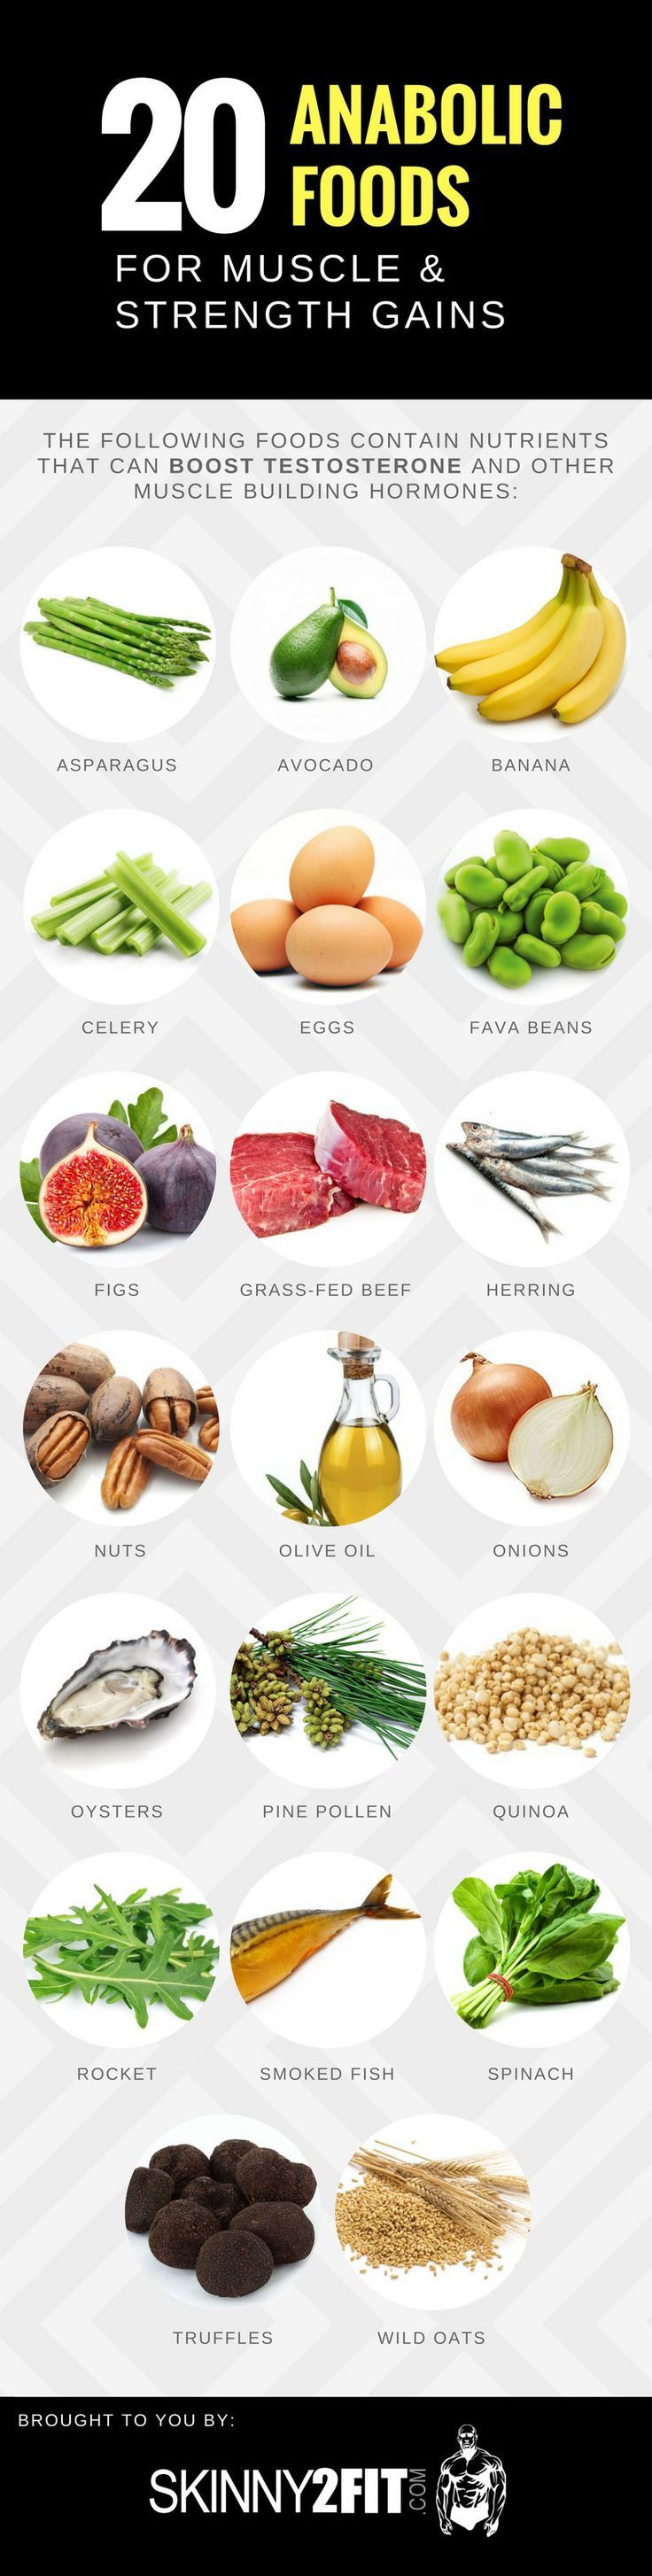 what foods have steroids in them